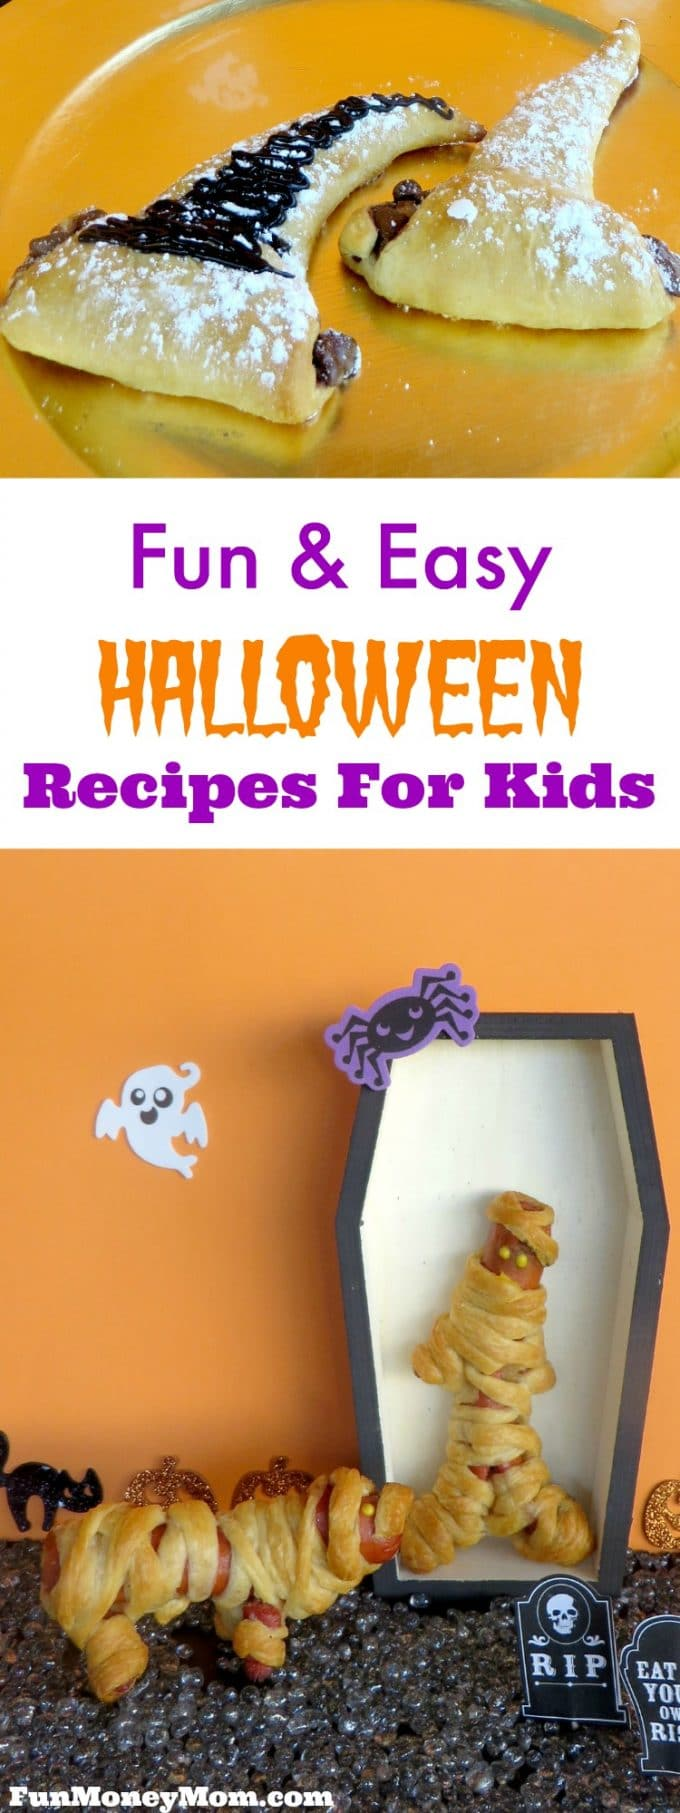 Want some fun Halloween recipes for the kids? They're going to love these easy Halloween treats! #ad